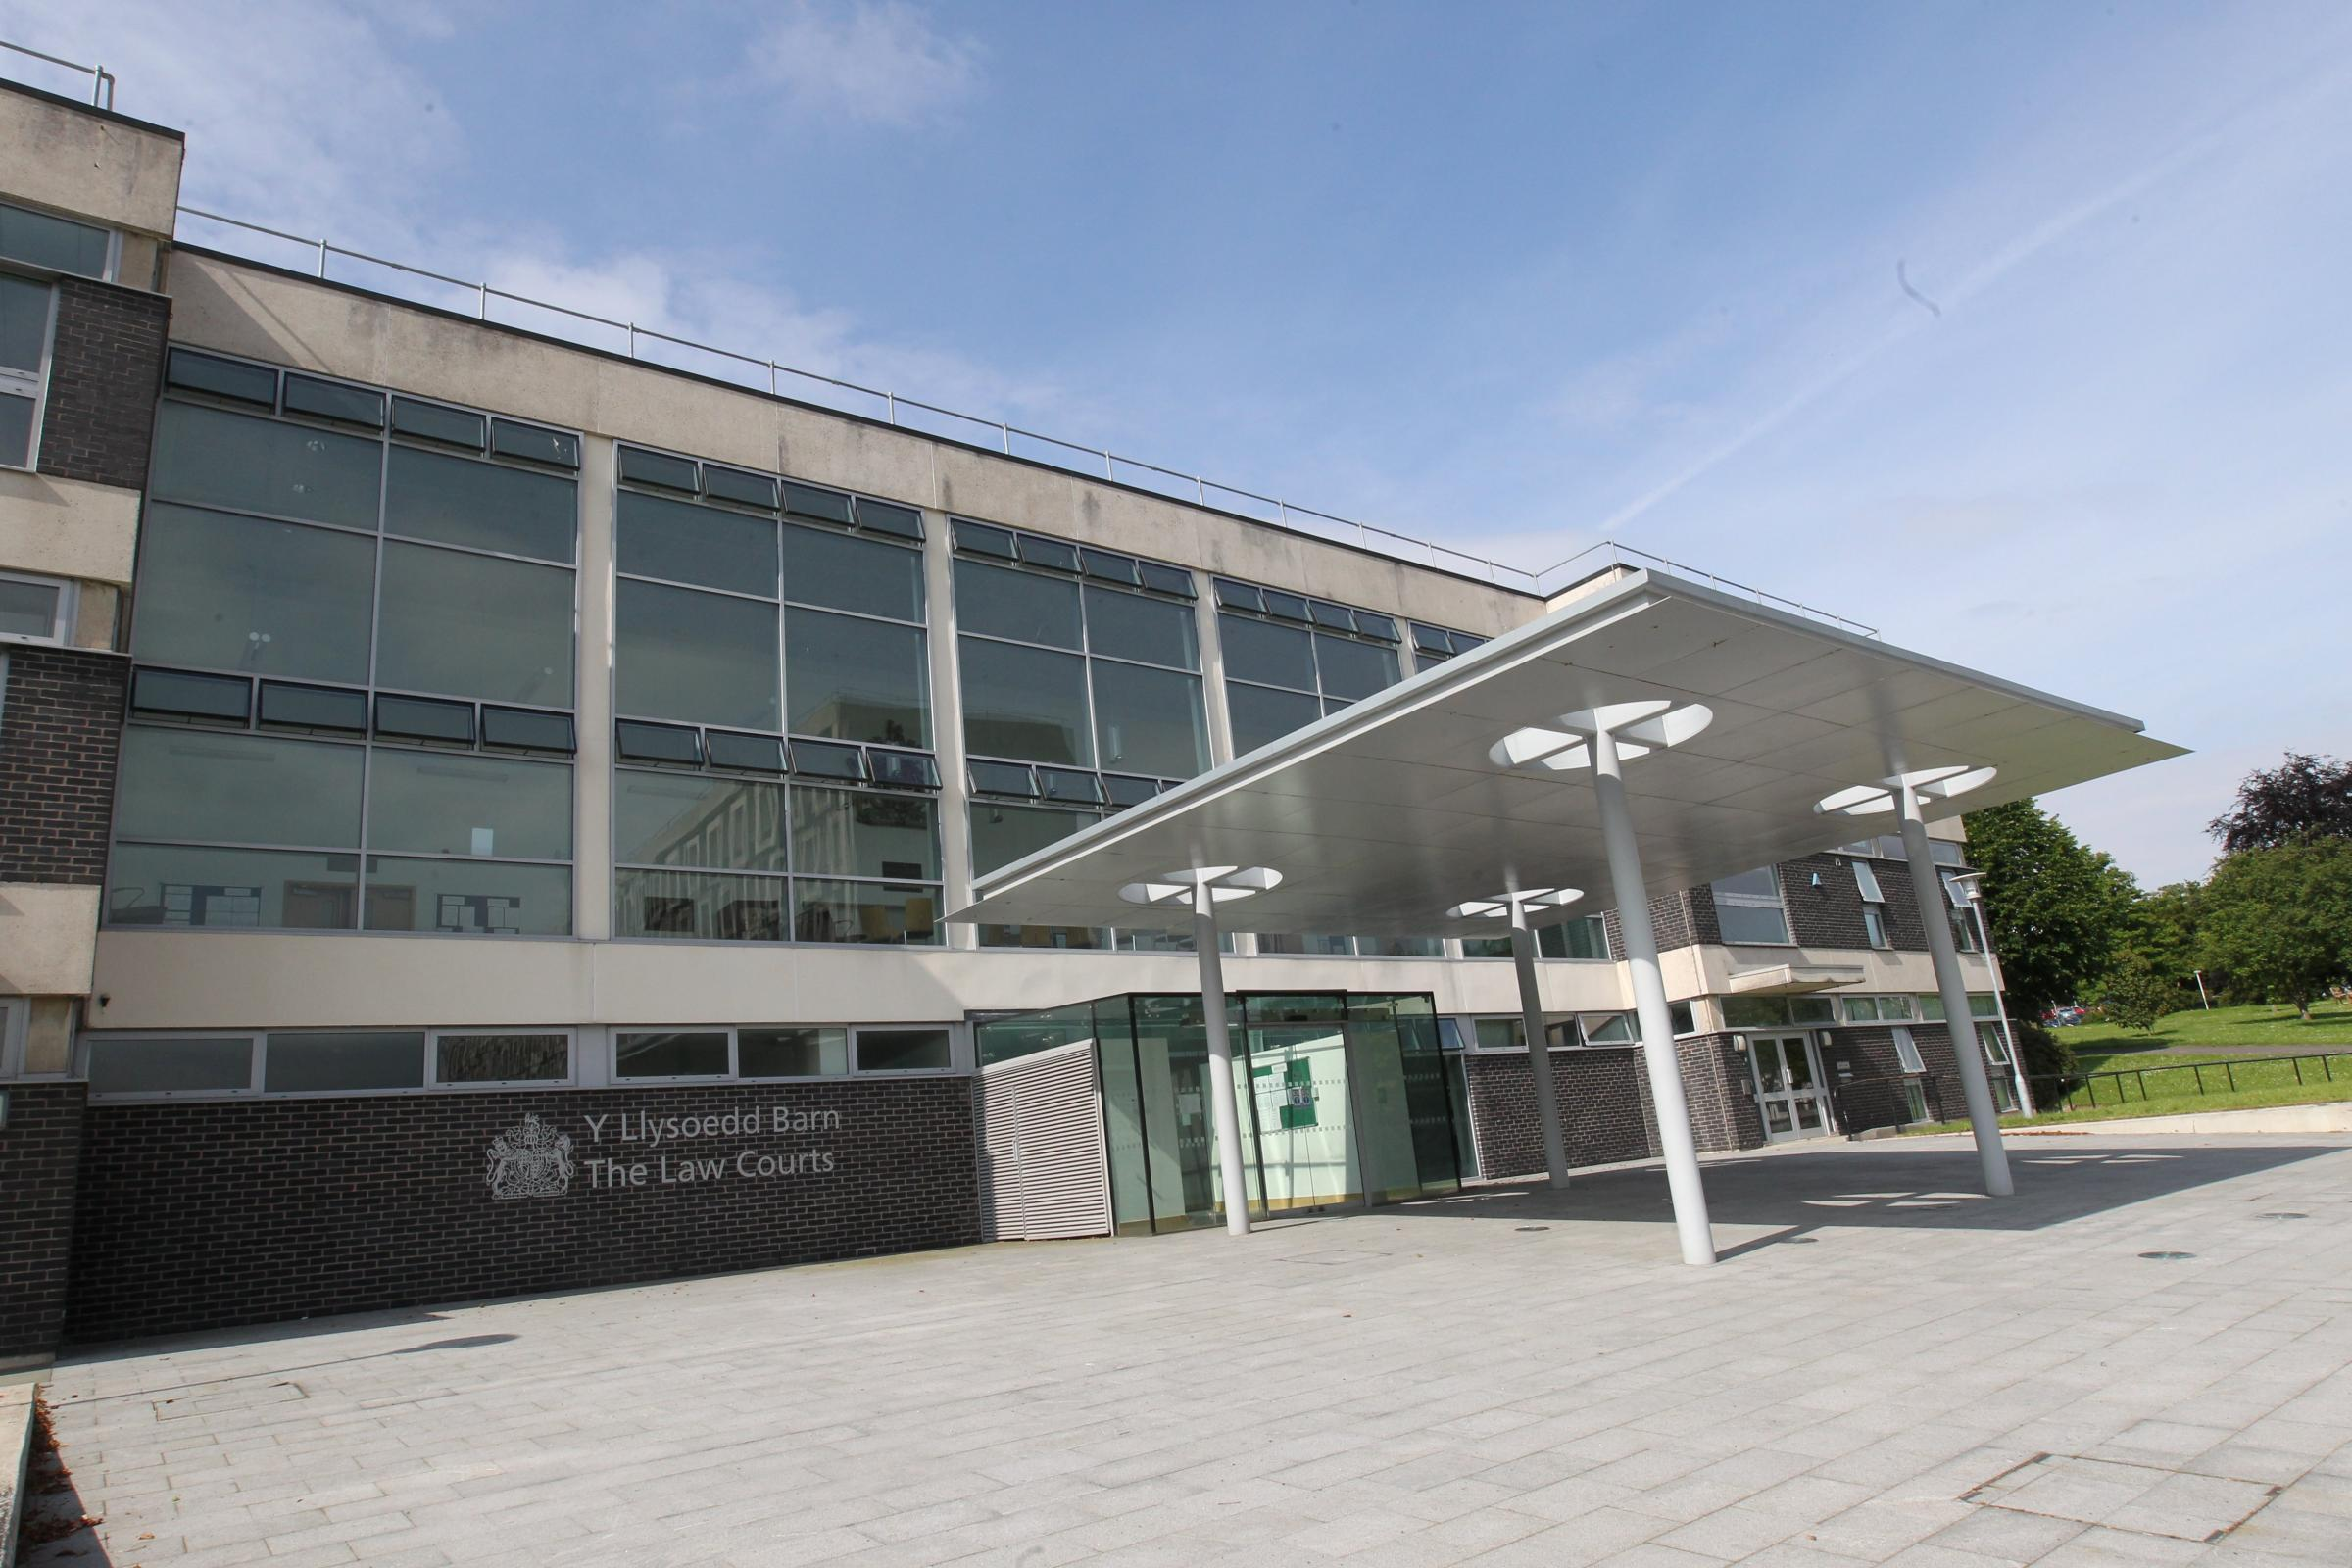 The law courts at Mold.